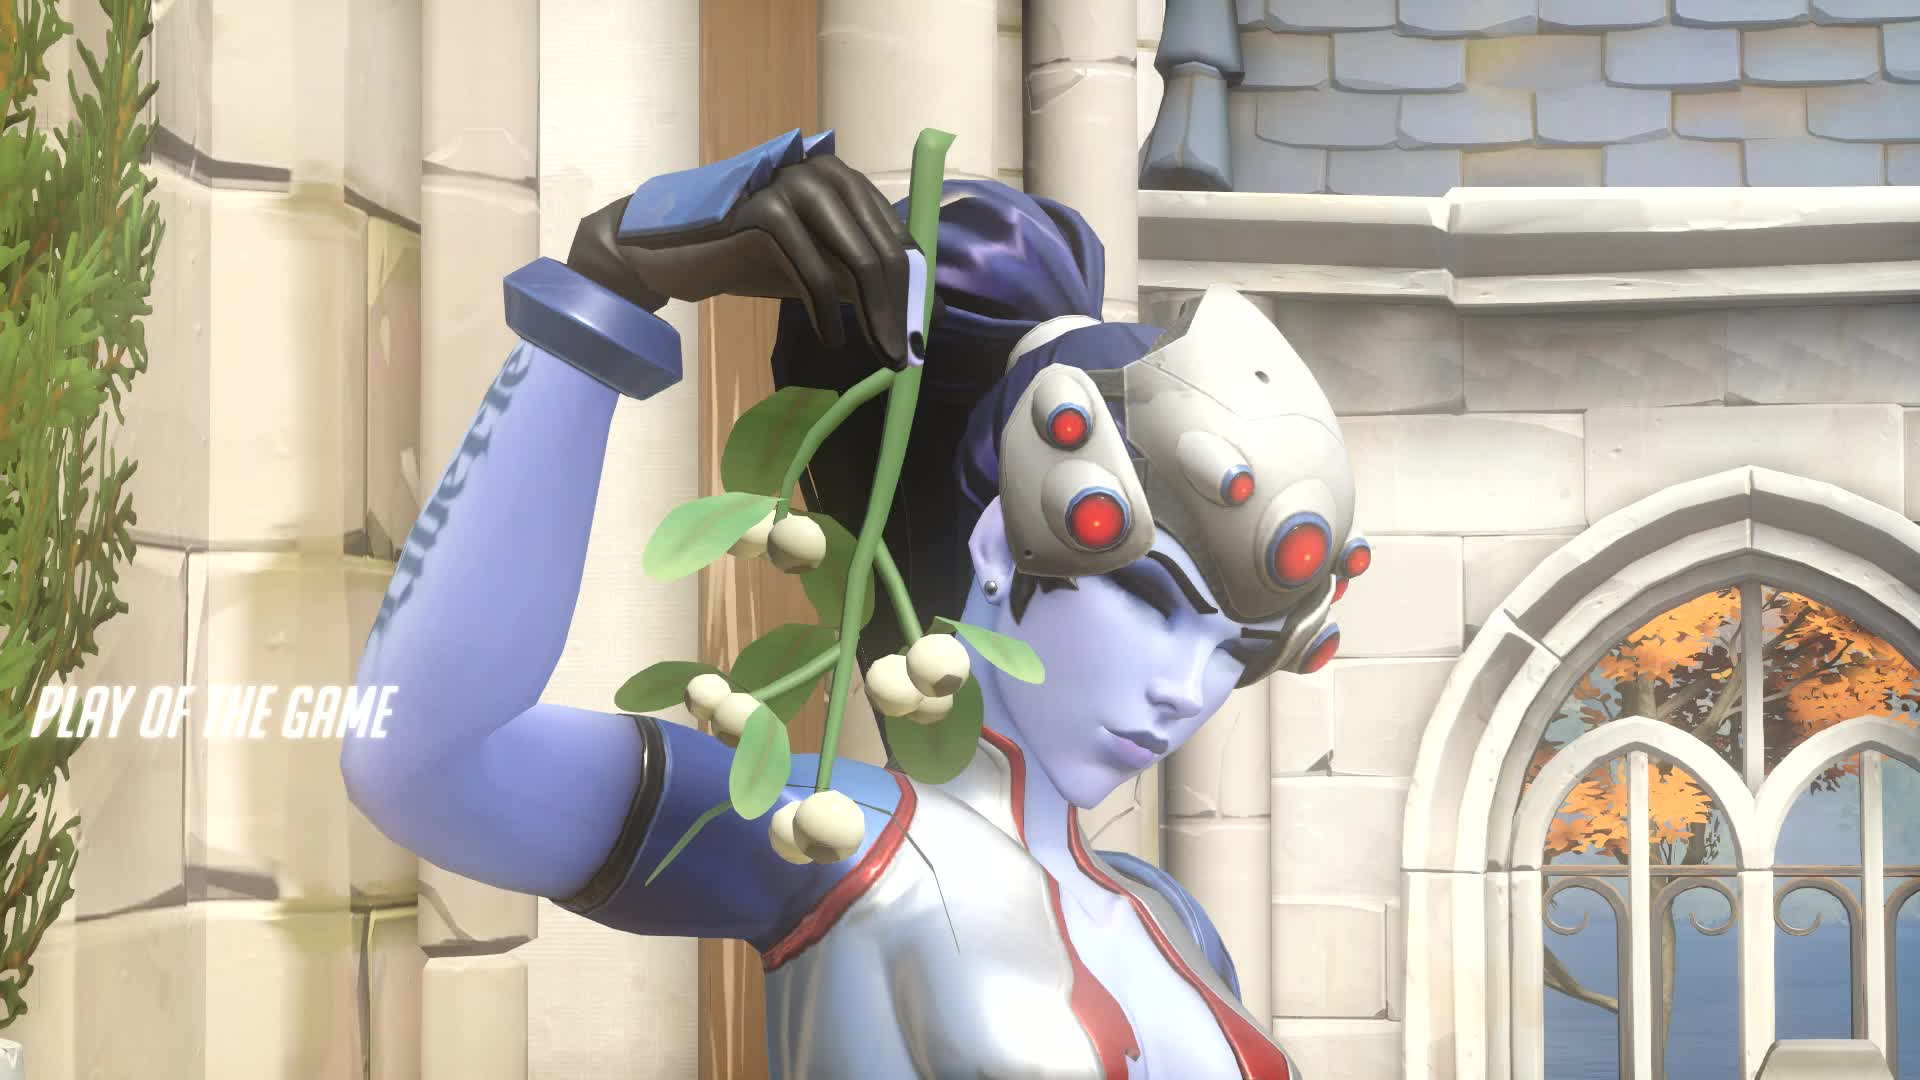 overwatch, popping off GIFs